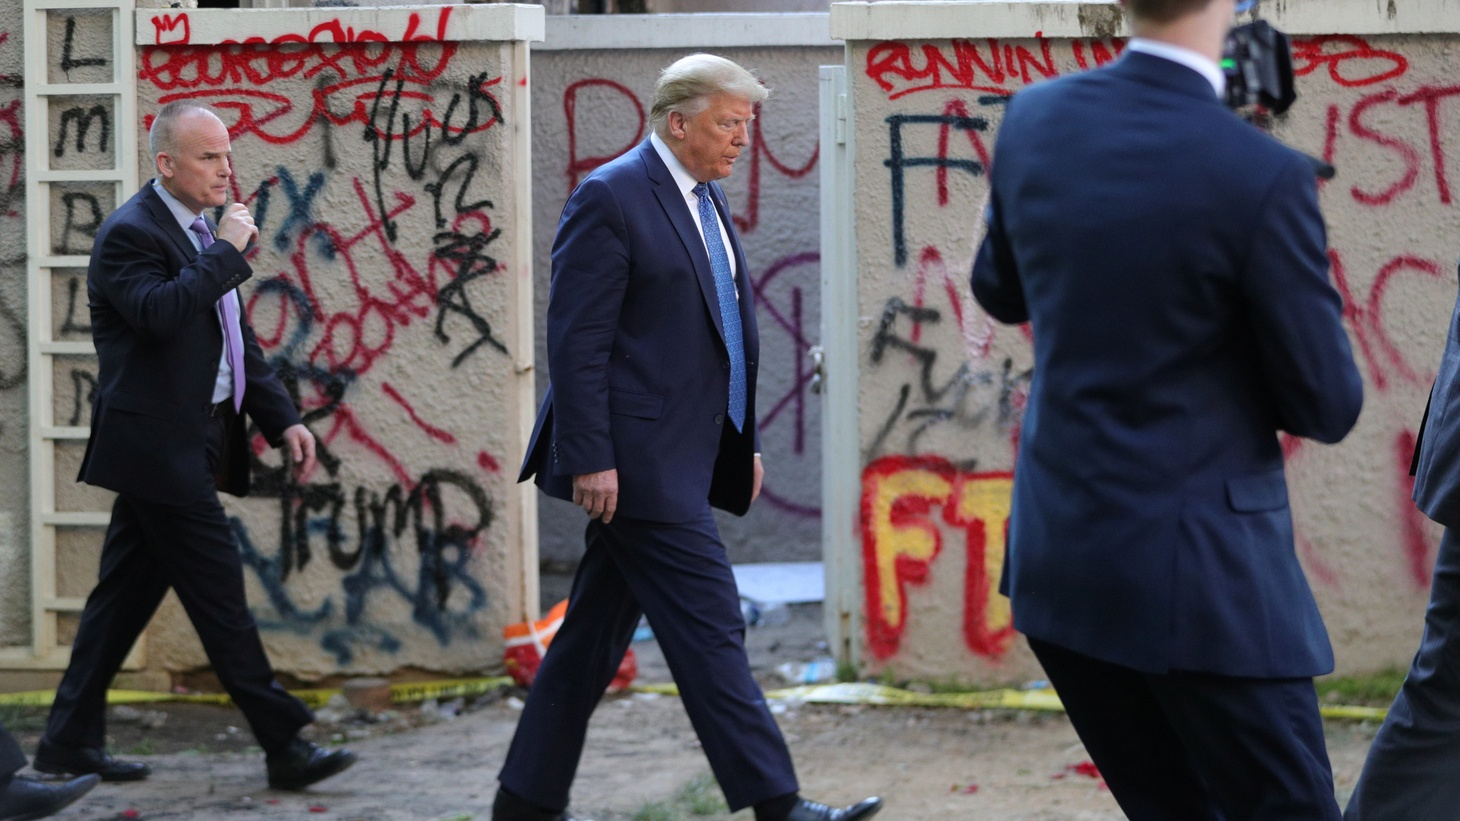 U.S. President Donald Trump walks past a building defaced with graffiti by protestors in Lafayette Park across from the White House after walking to St John's Church for a photo opportunity during ongoing protests over racial inequality in the wake of the death of George Floyd while in Minneapolis police custody, outside the White House in Washington, U.S., June 1, 2020.